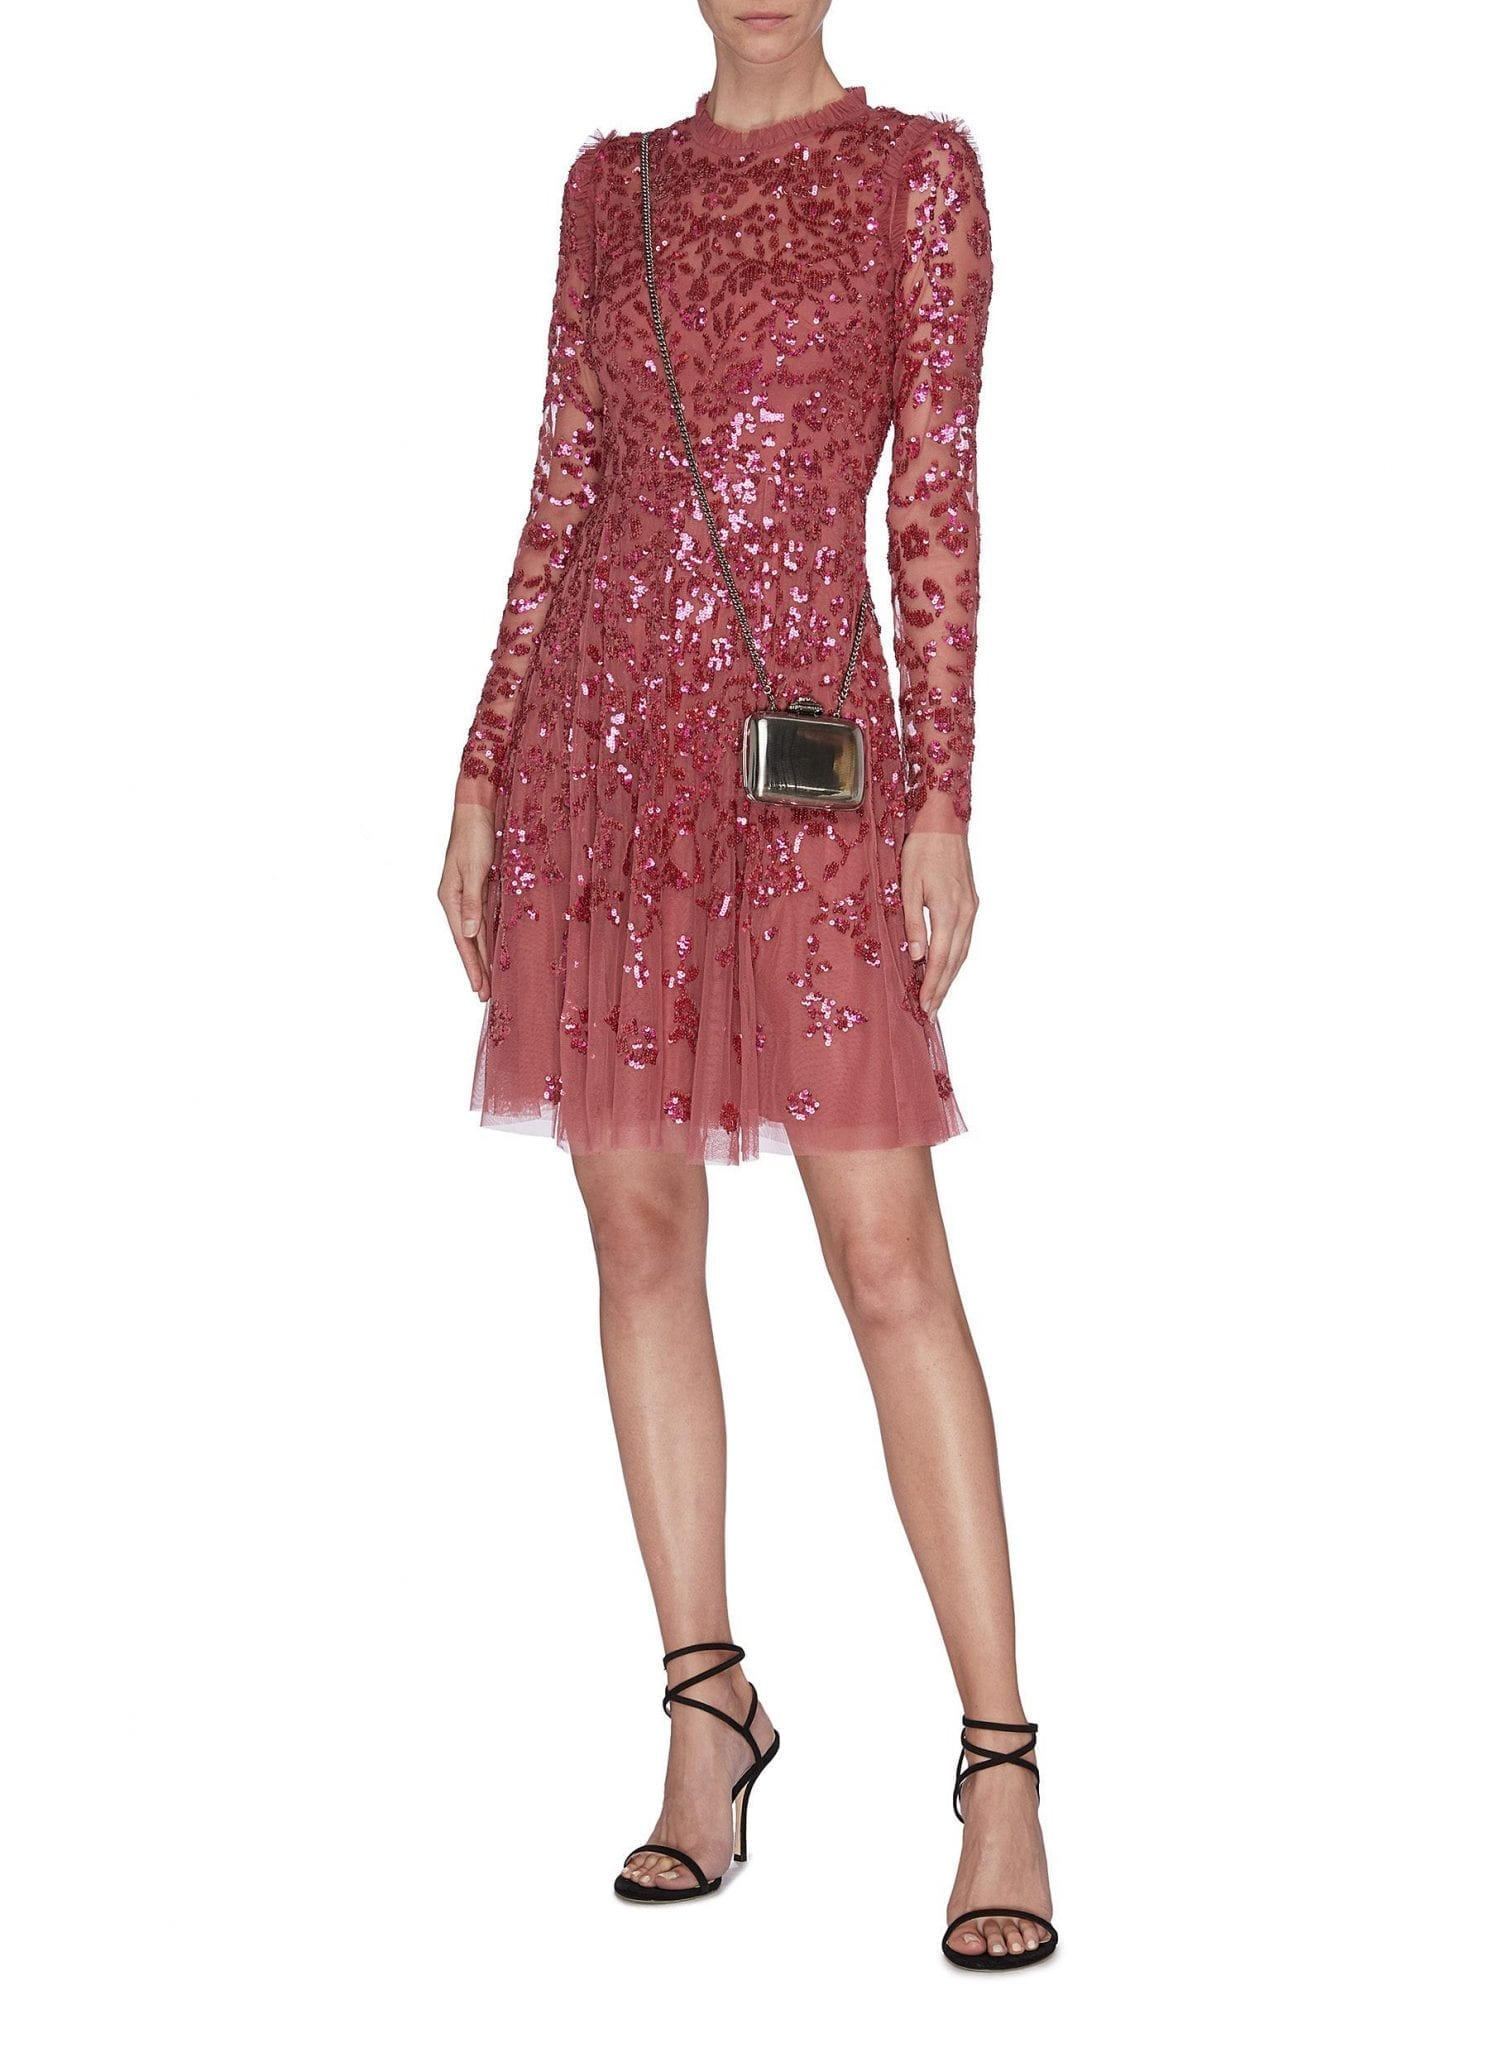 NEEDLE & THREAD 'Rosmund' Sequin Embroidered Floral Sheer Tulle Dress